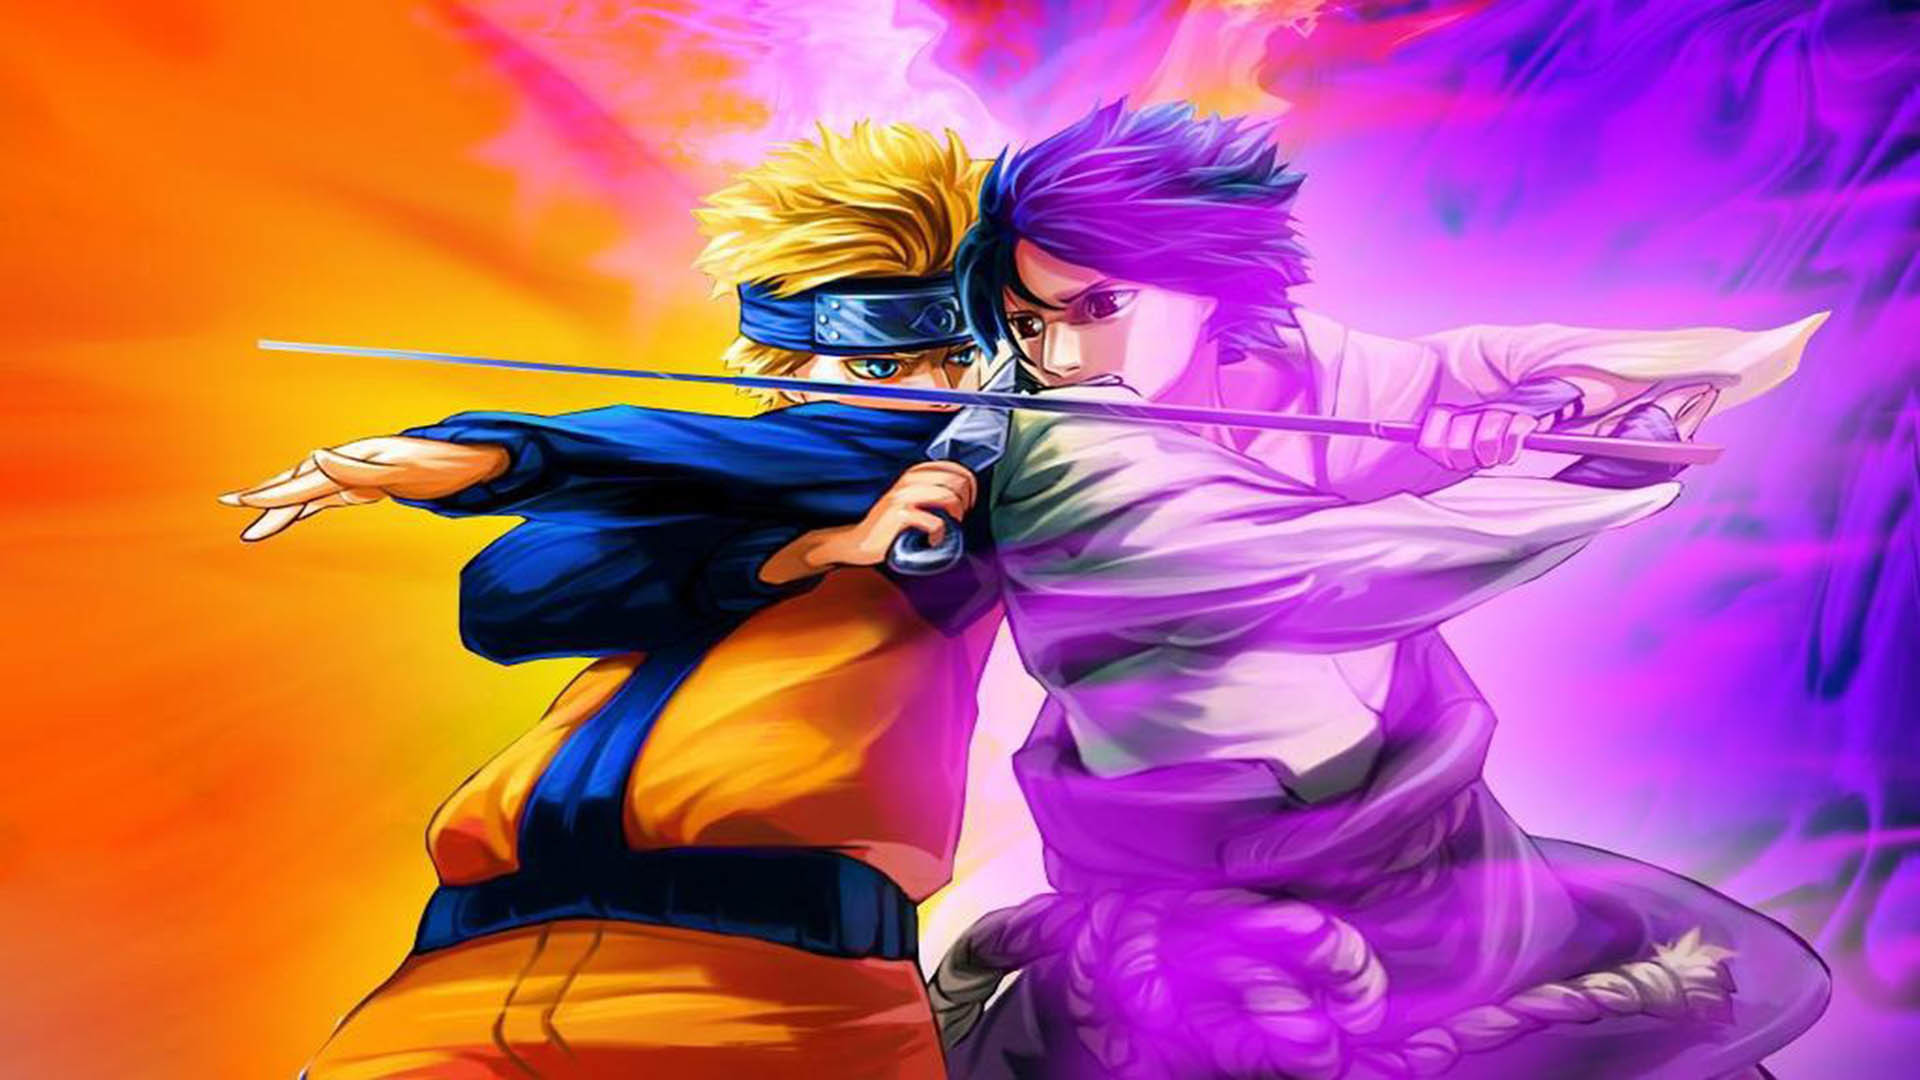 Naruto Vs Sasuke Wallpaper Wallpapertag